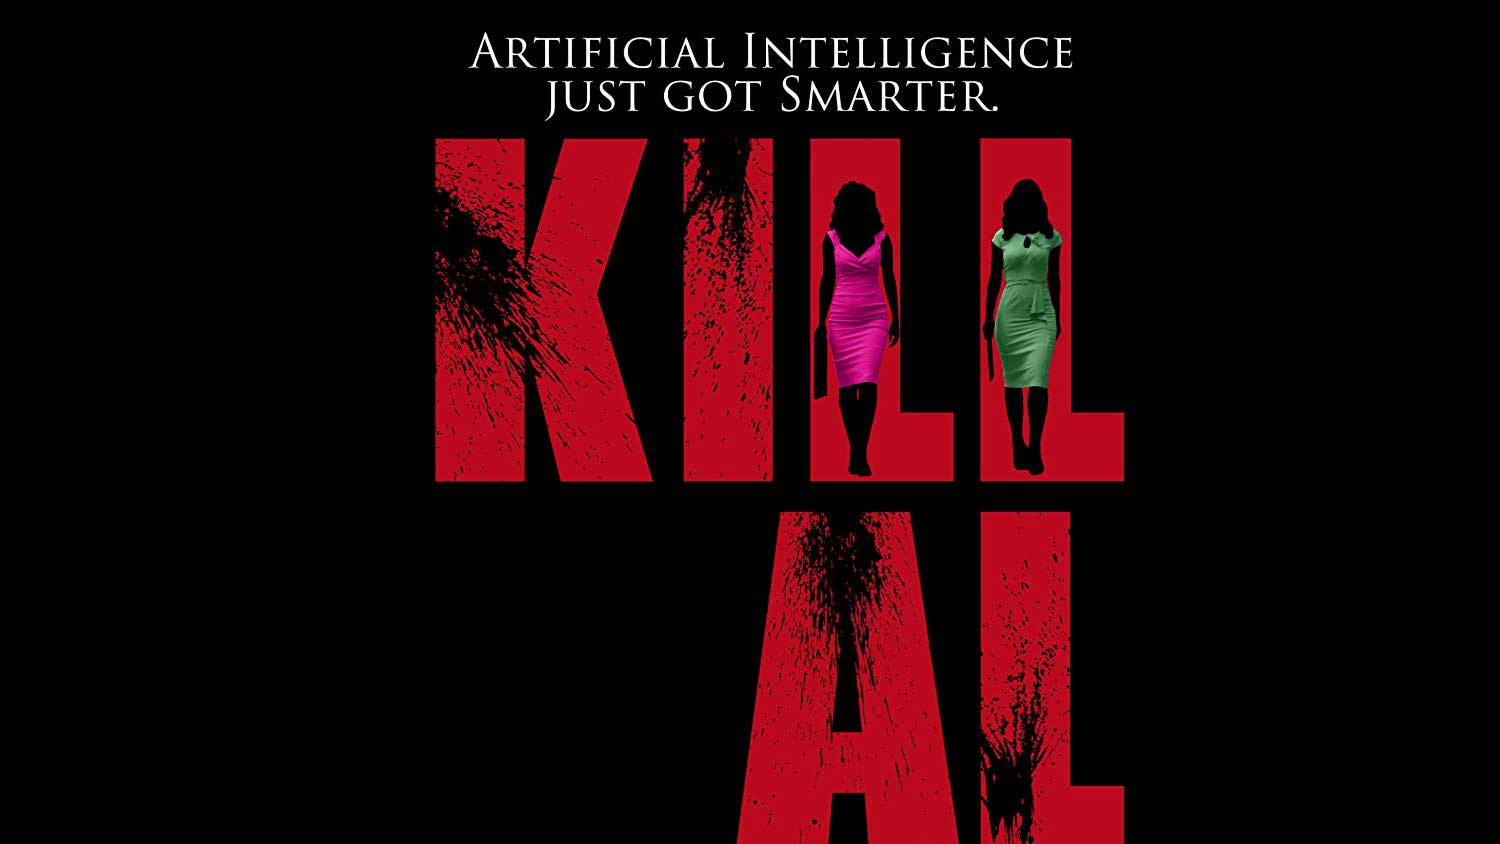 Kill Al Review – The Robots Are Coming - OC Movie Reviews - Movie Reviews, Movie News, Documentary Reviews, Short Films, Short Film Reviews, Trailers, Movie Trailers, Interviews, film reviews, film news, hollywood, indie films, documentaries